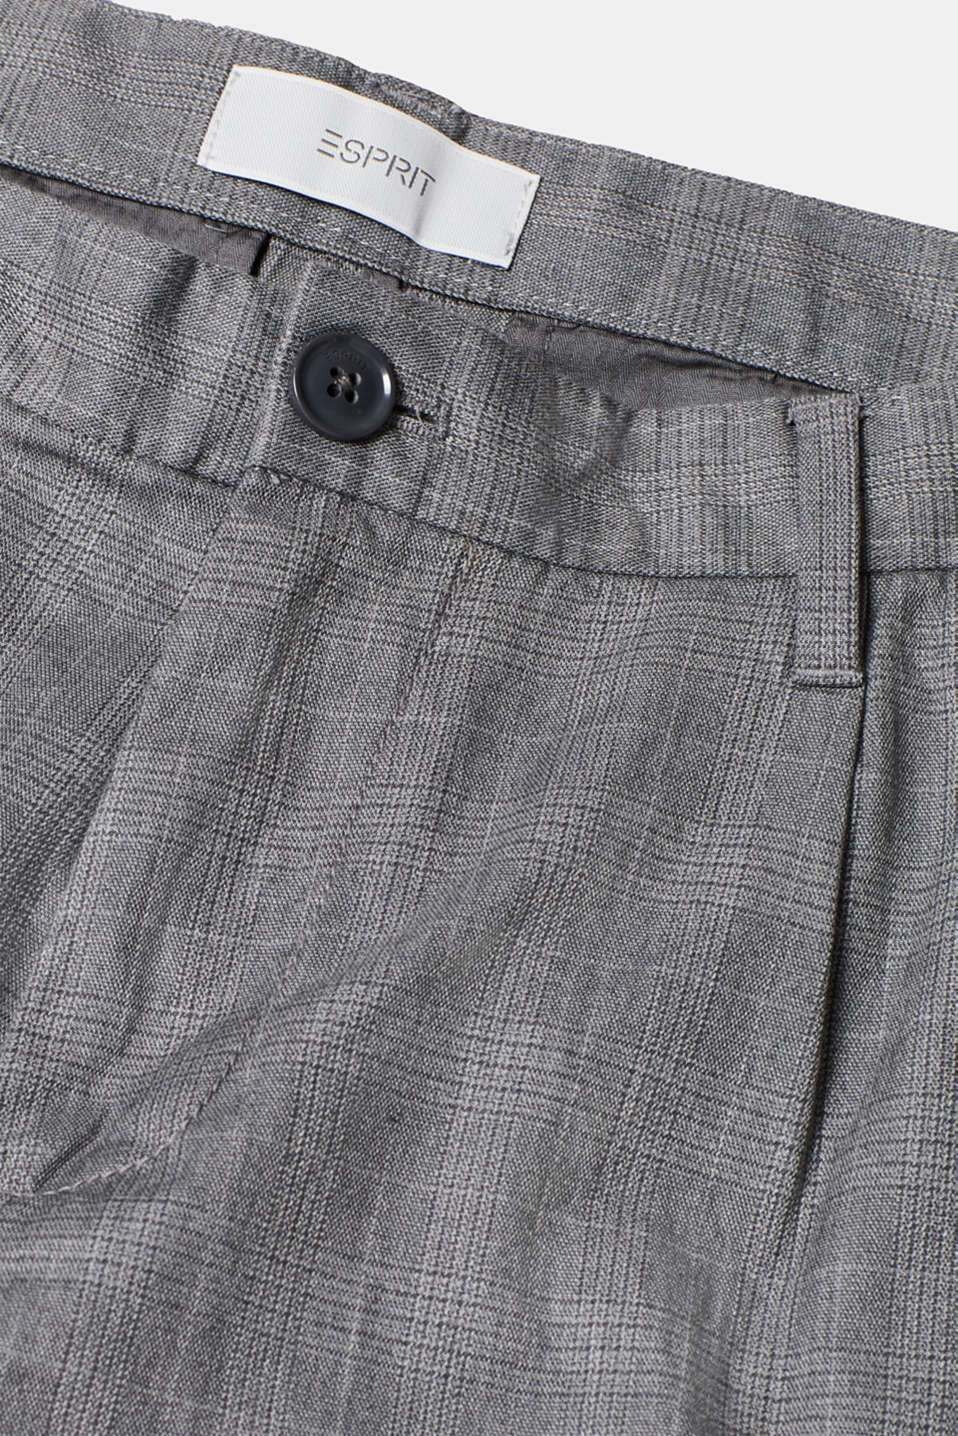 Trousers with a check pattern, made of stretch cotton, GREY, detail image number 4